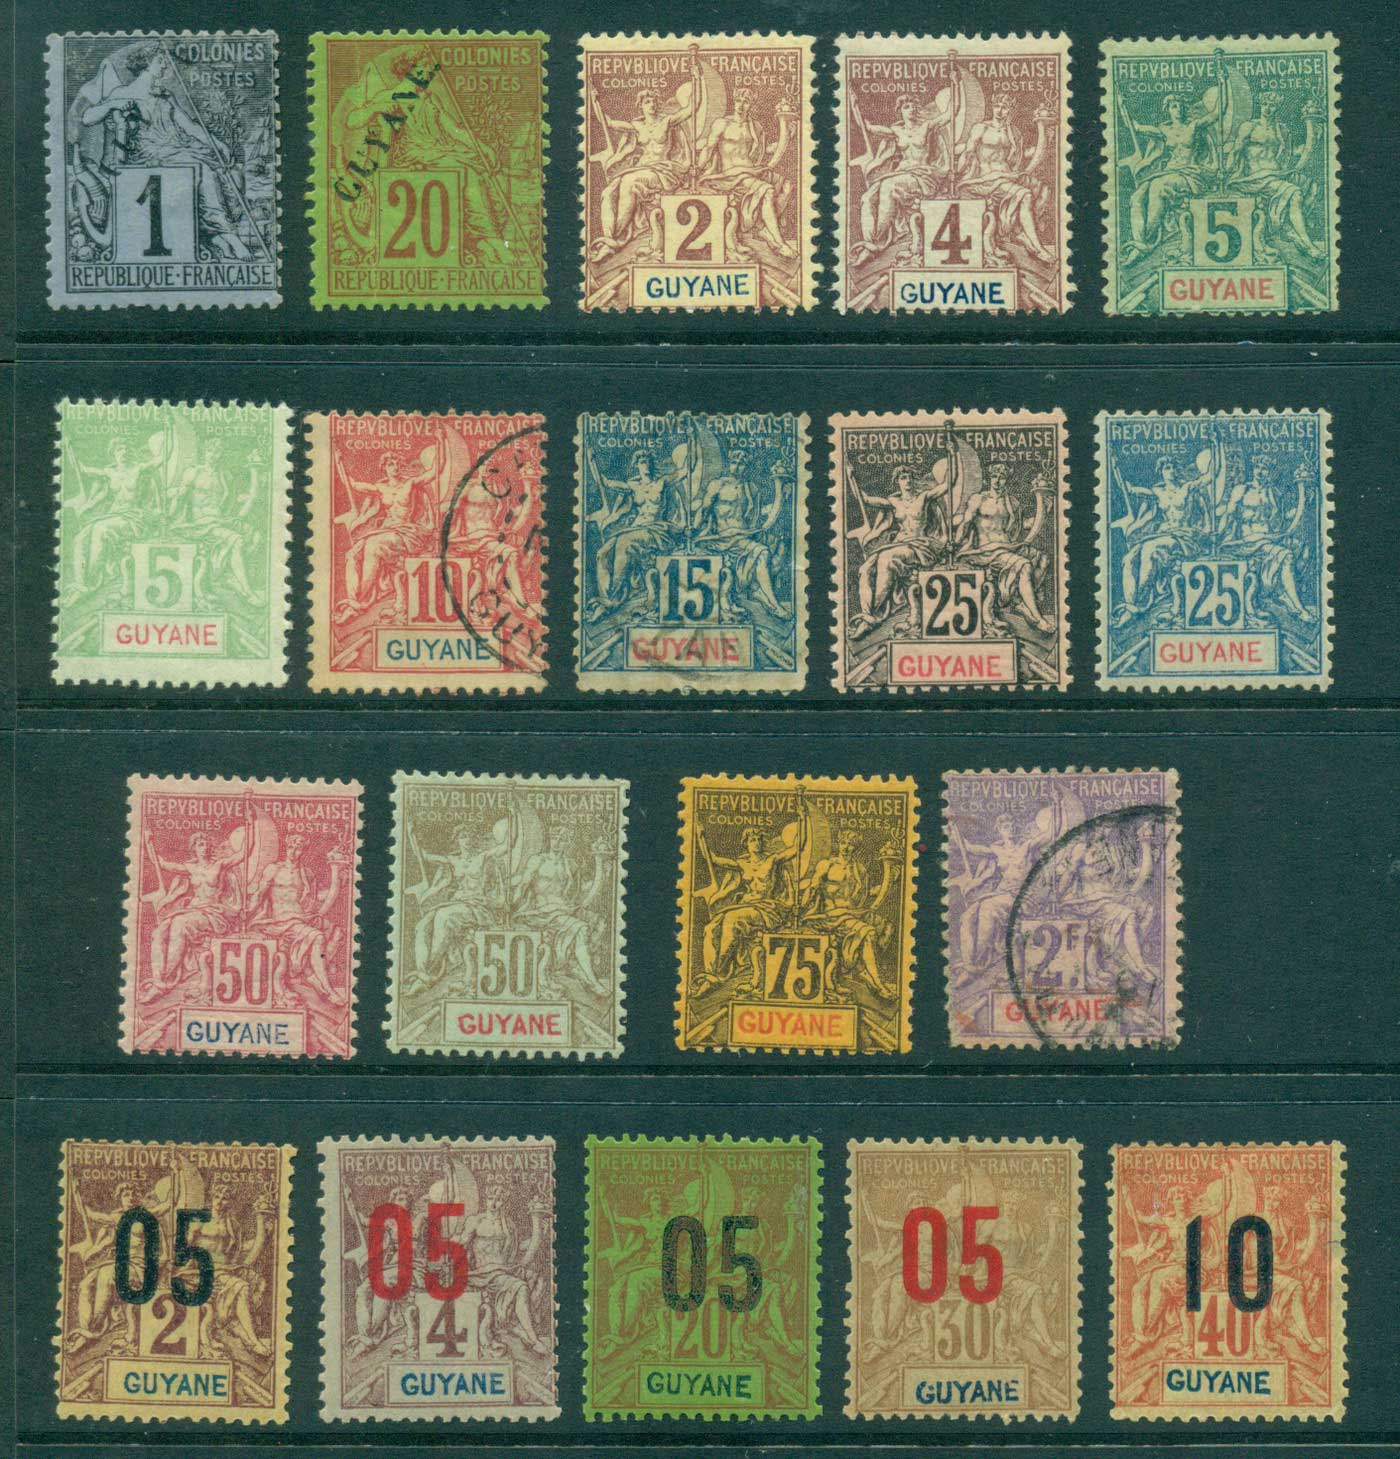 French Guiana 1892-1904 Navigation & Commerce asst (19) FU/MLH lot38602